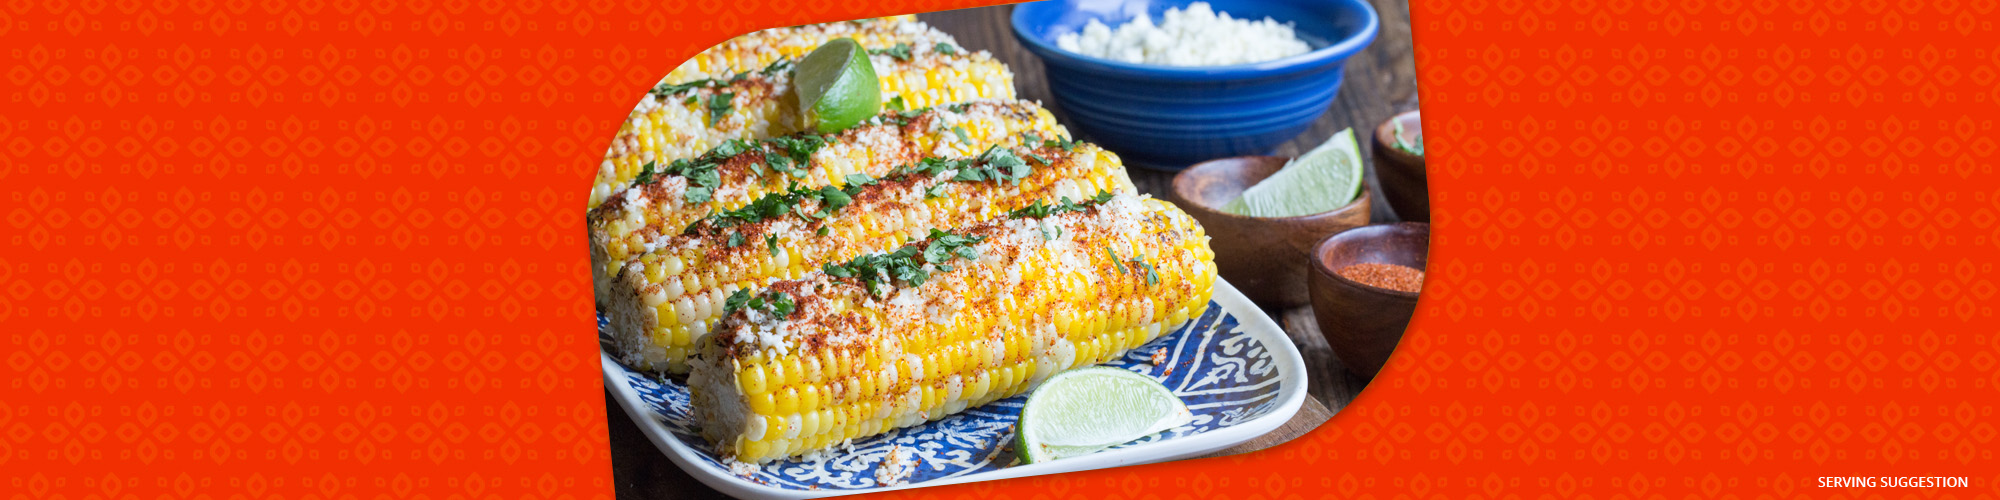 Salsas grilled corn on the cob